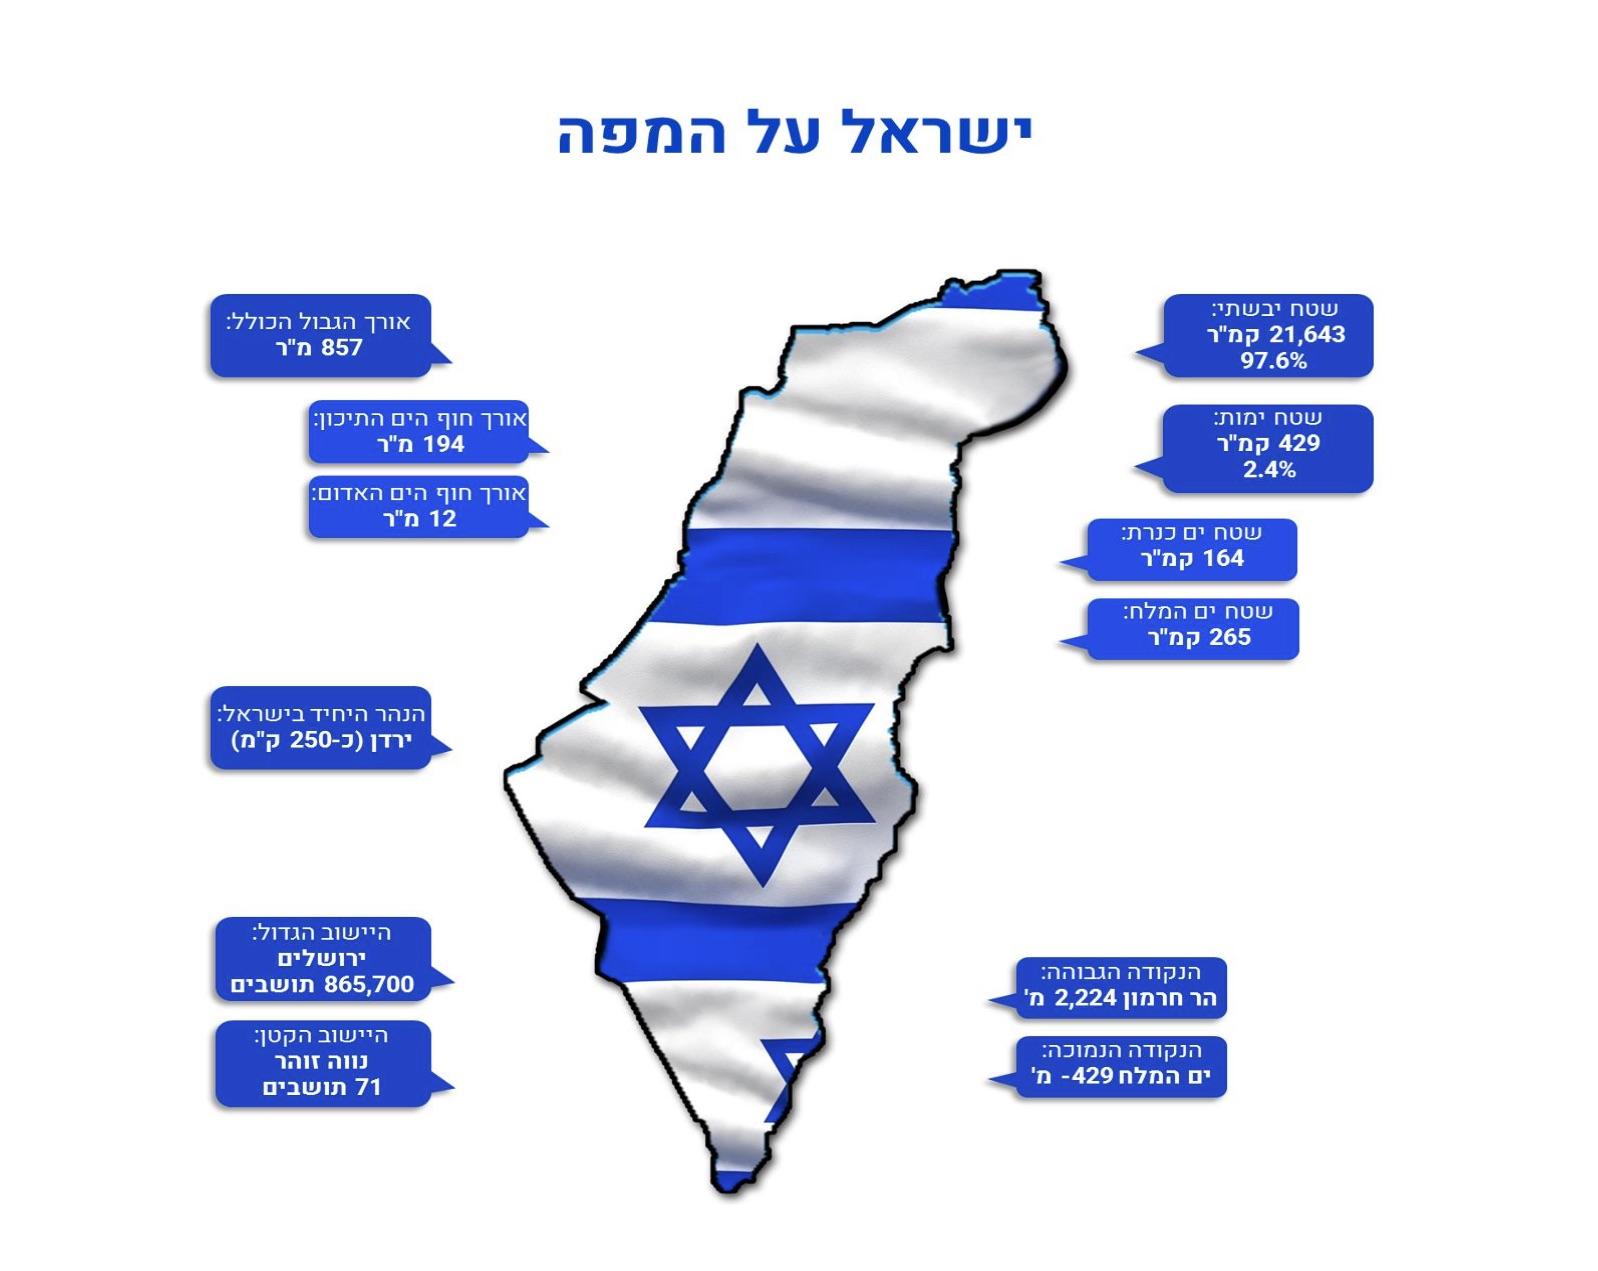 A map published by the Israeli Central Bureau of Statistics on the eve of Independence Day 2017.